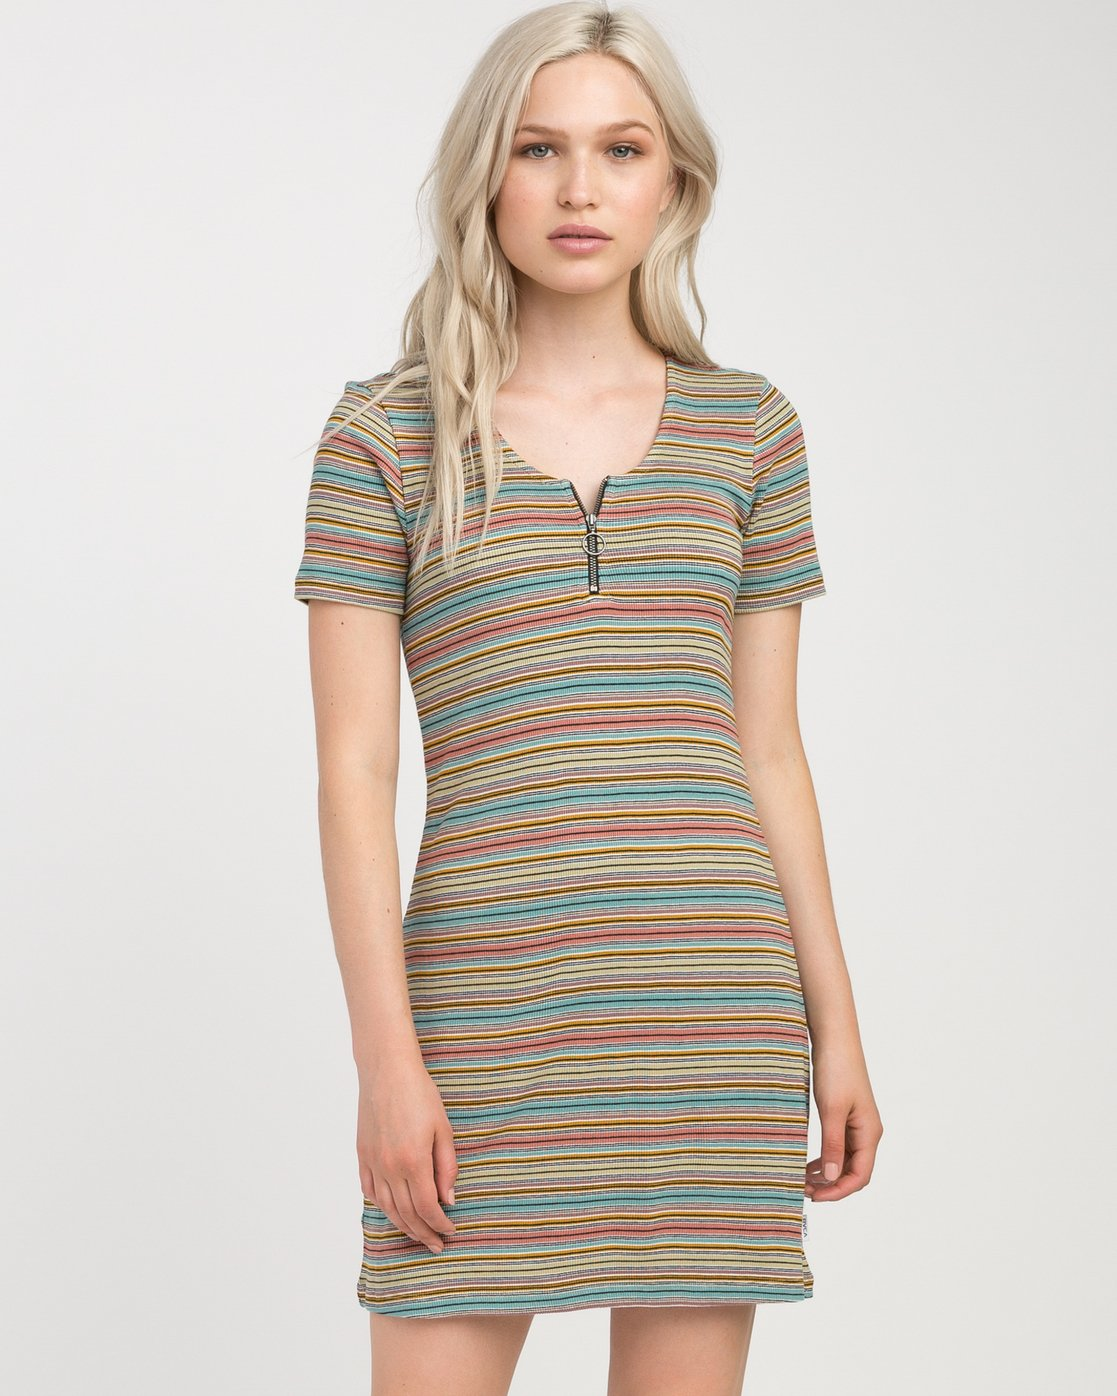 0 Zip It Ribbed Dress Multicolor WD05NRZP RVCA